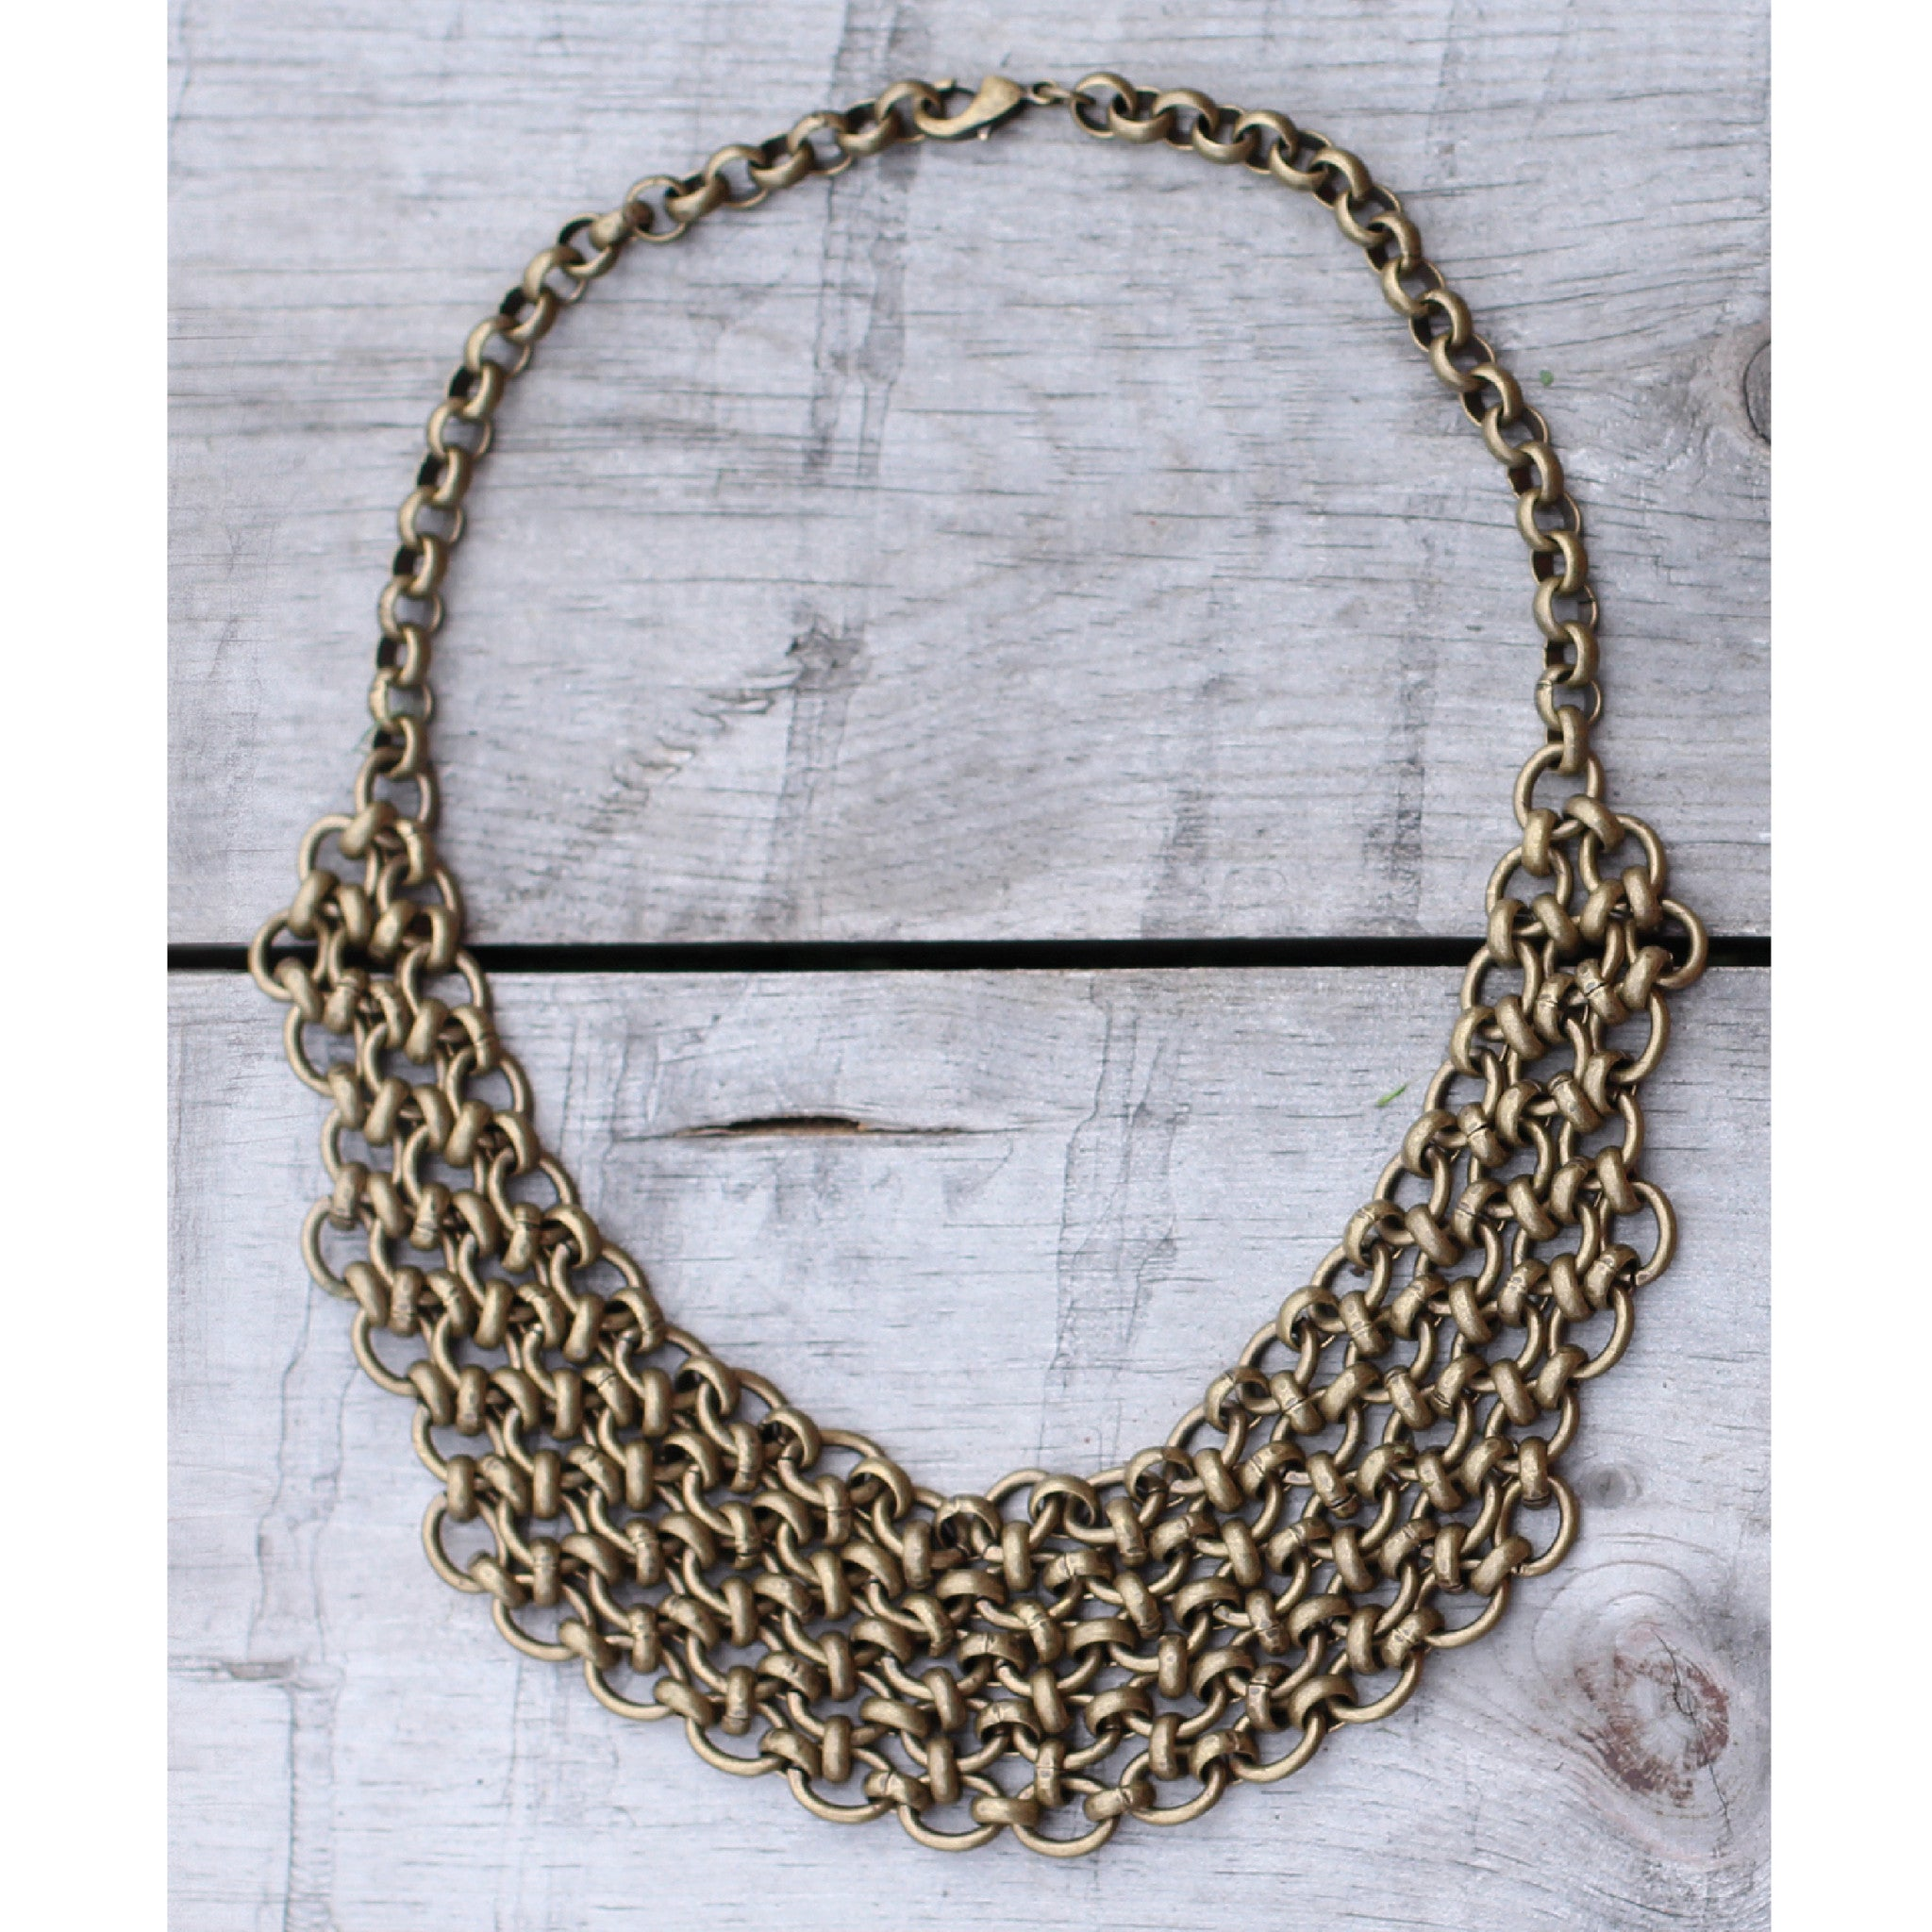 ANTIQUE BRASS CHAIN MAILLE BIB NECKLACE